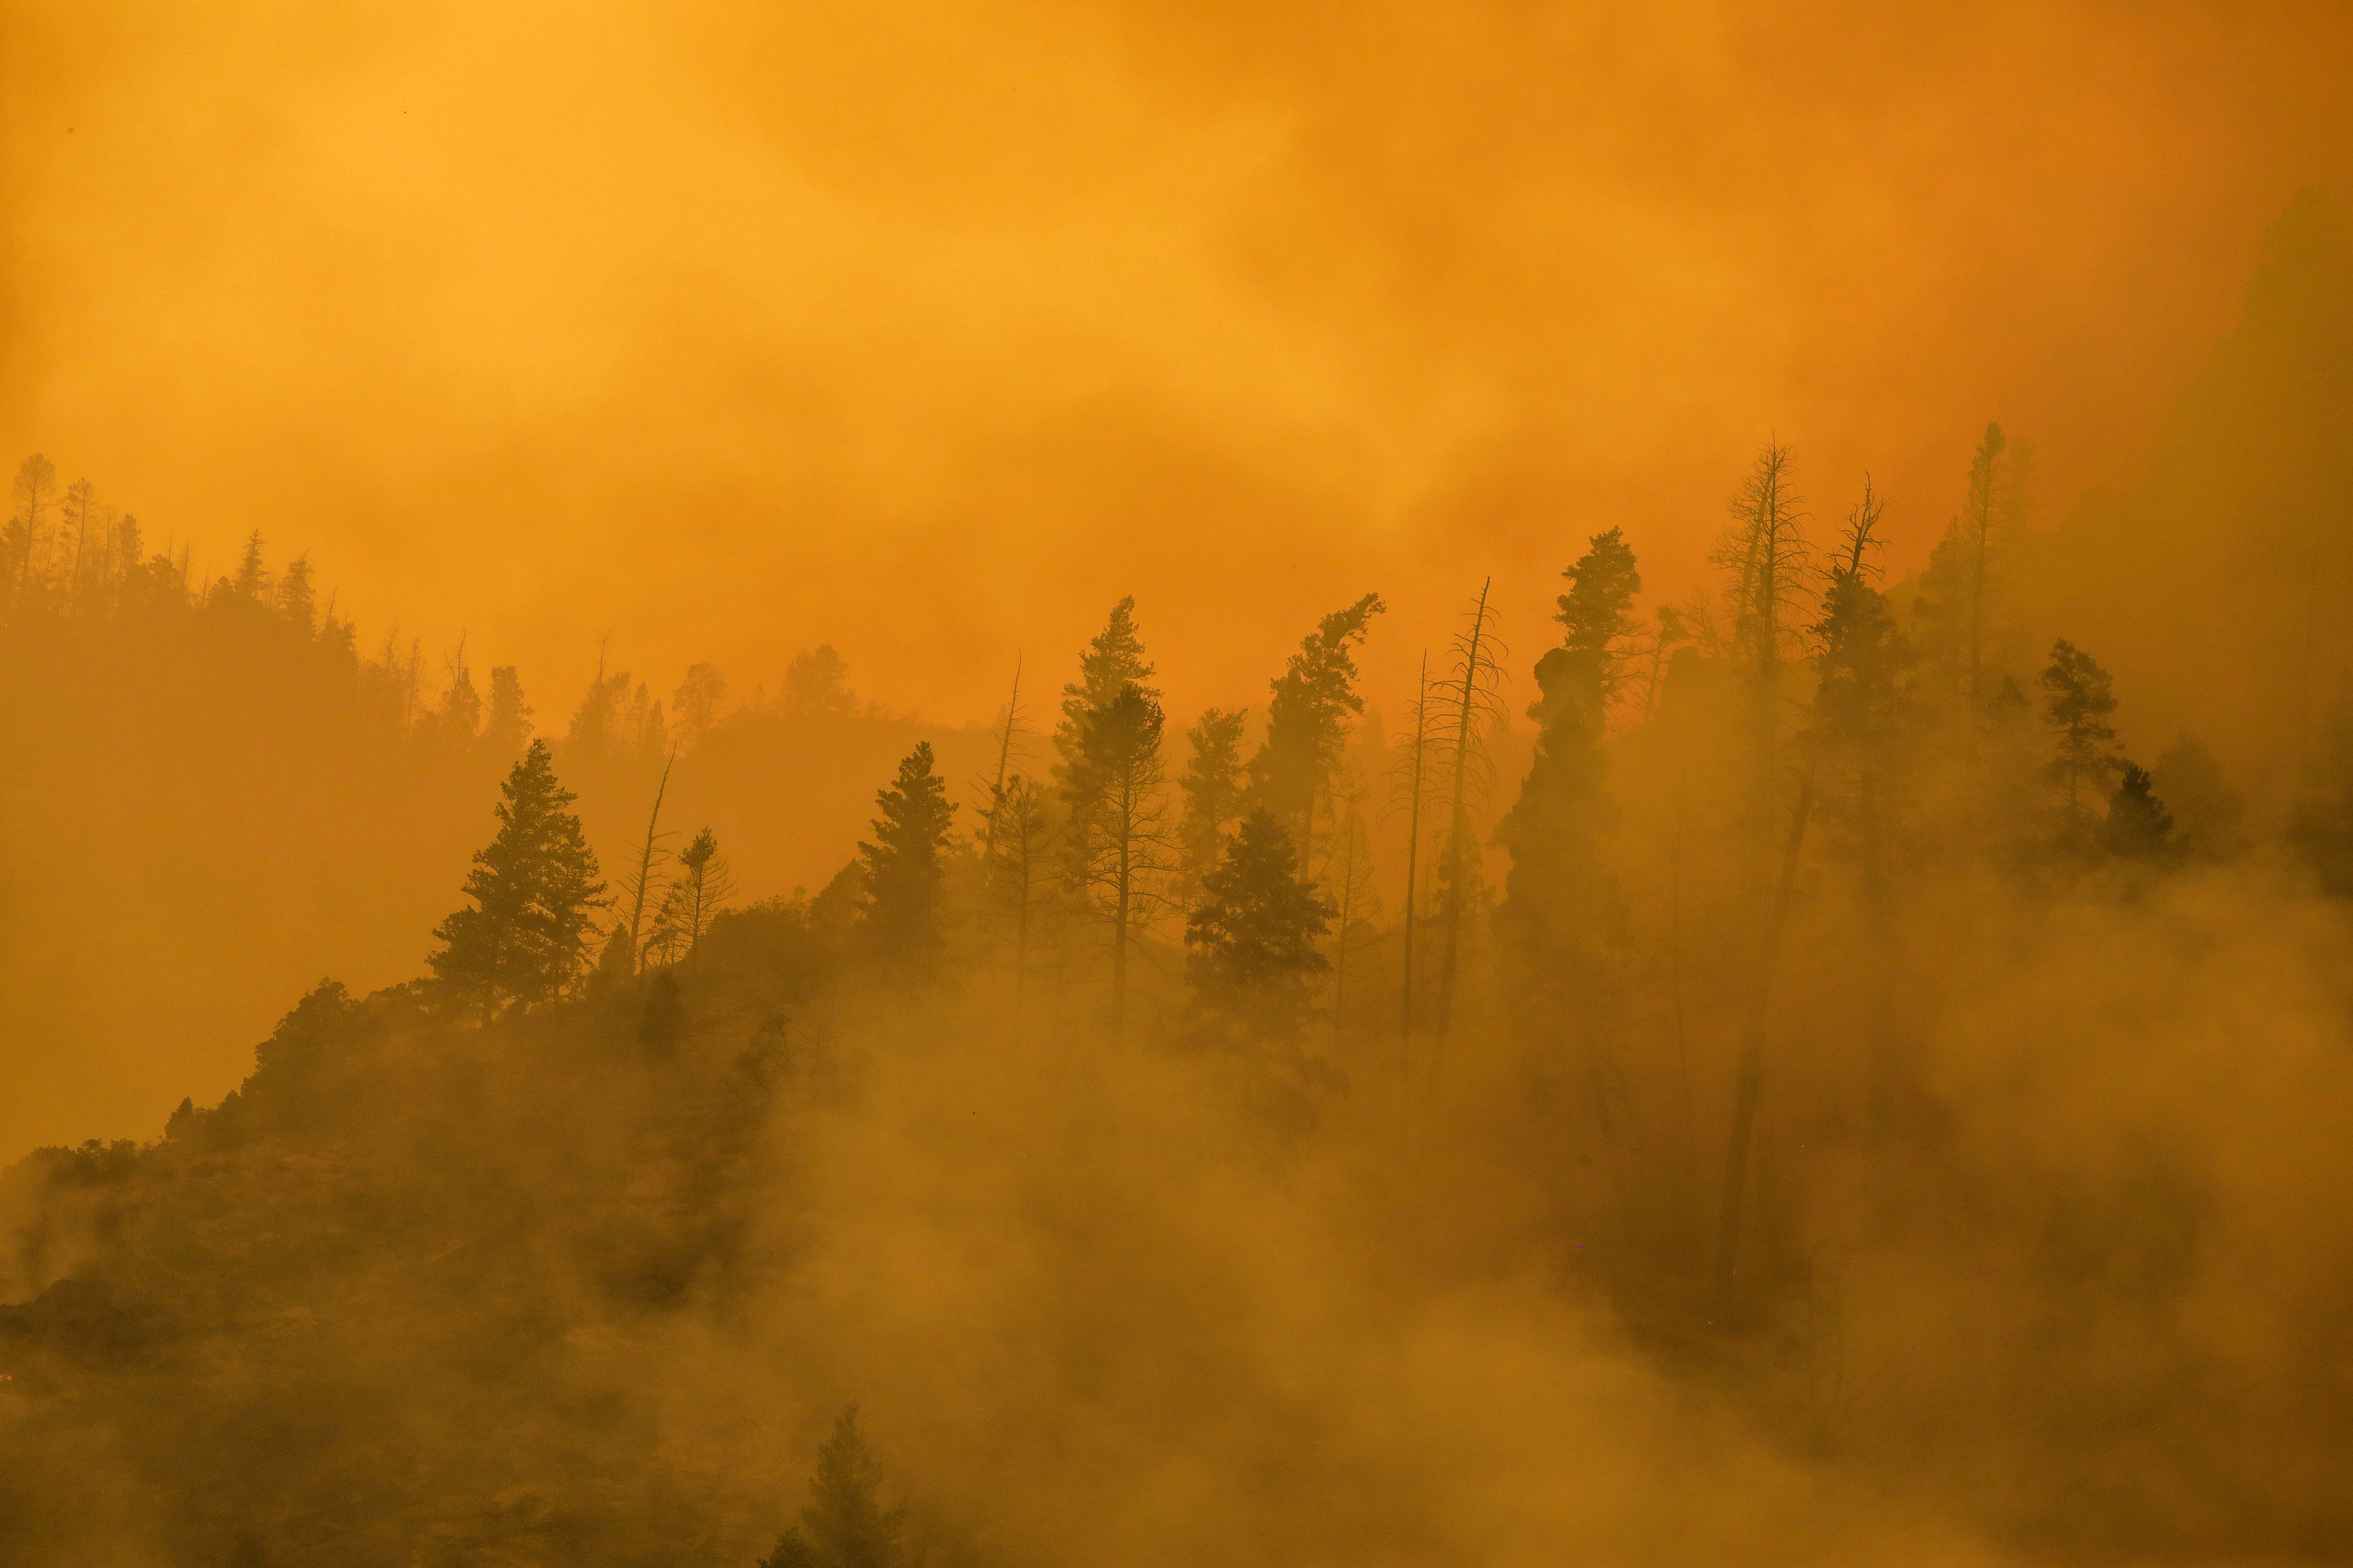 Smoke is thick in Glenwood Canyon from the Grizzly Creek fire near Glenwood Springs, Colorado, on August 16.